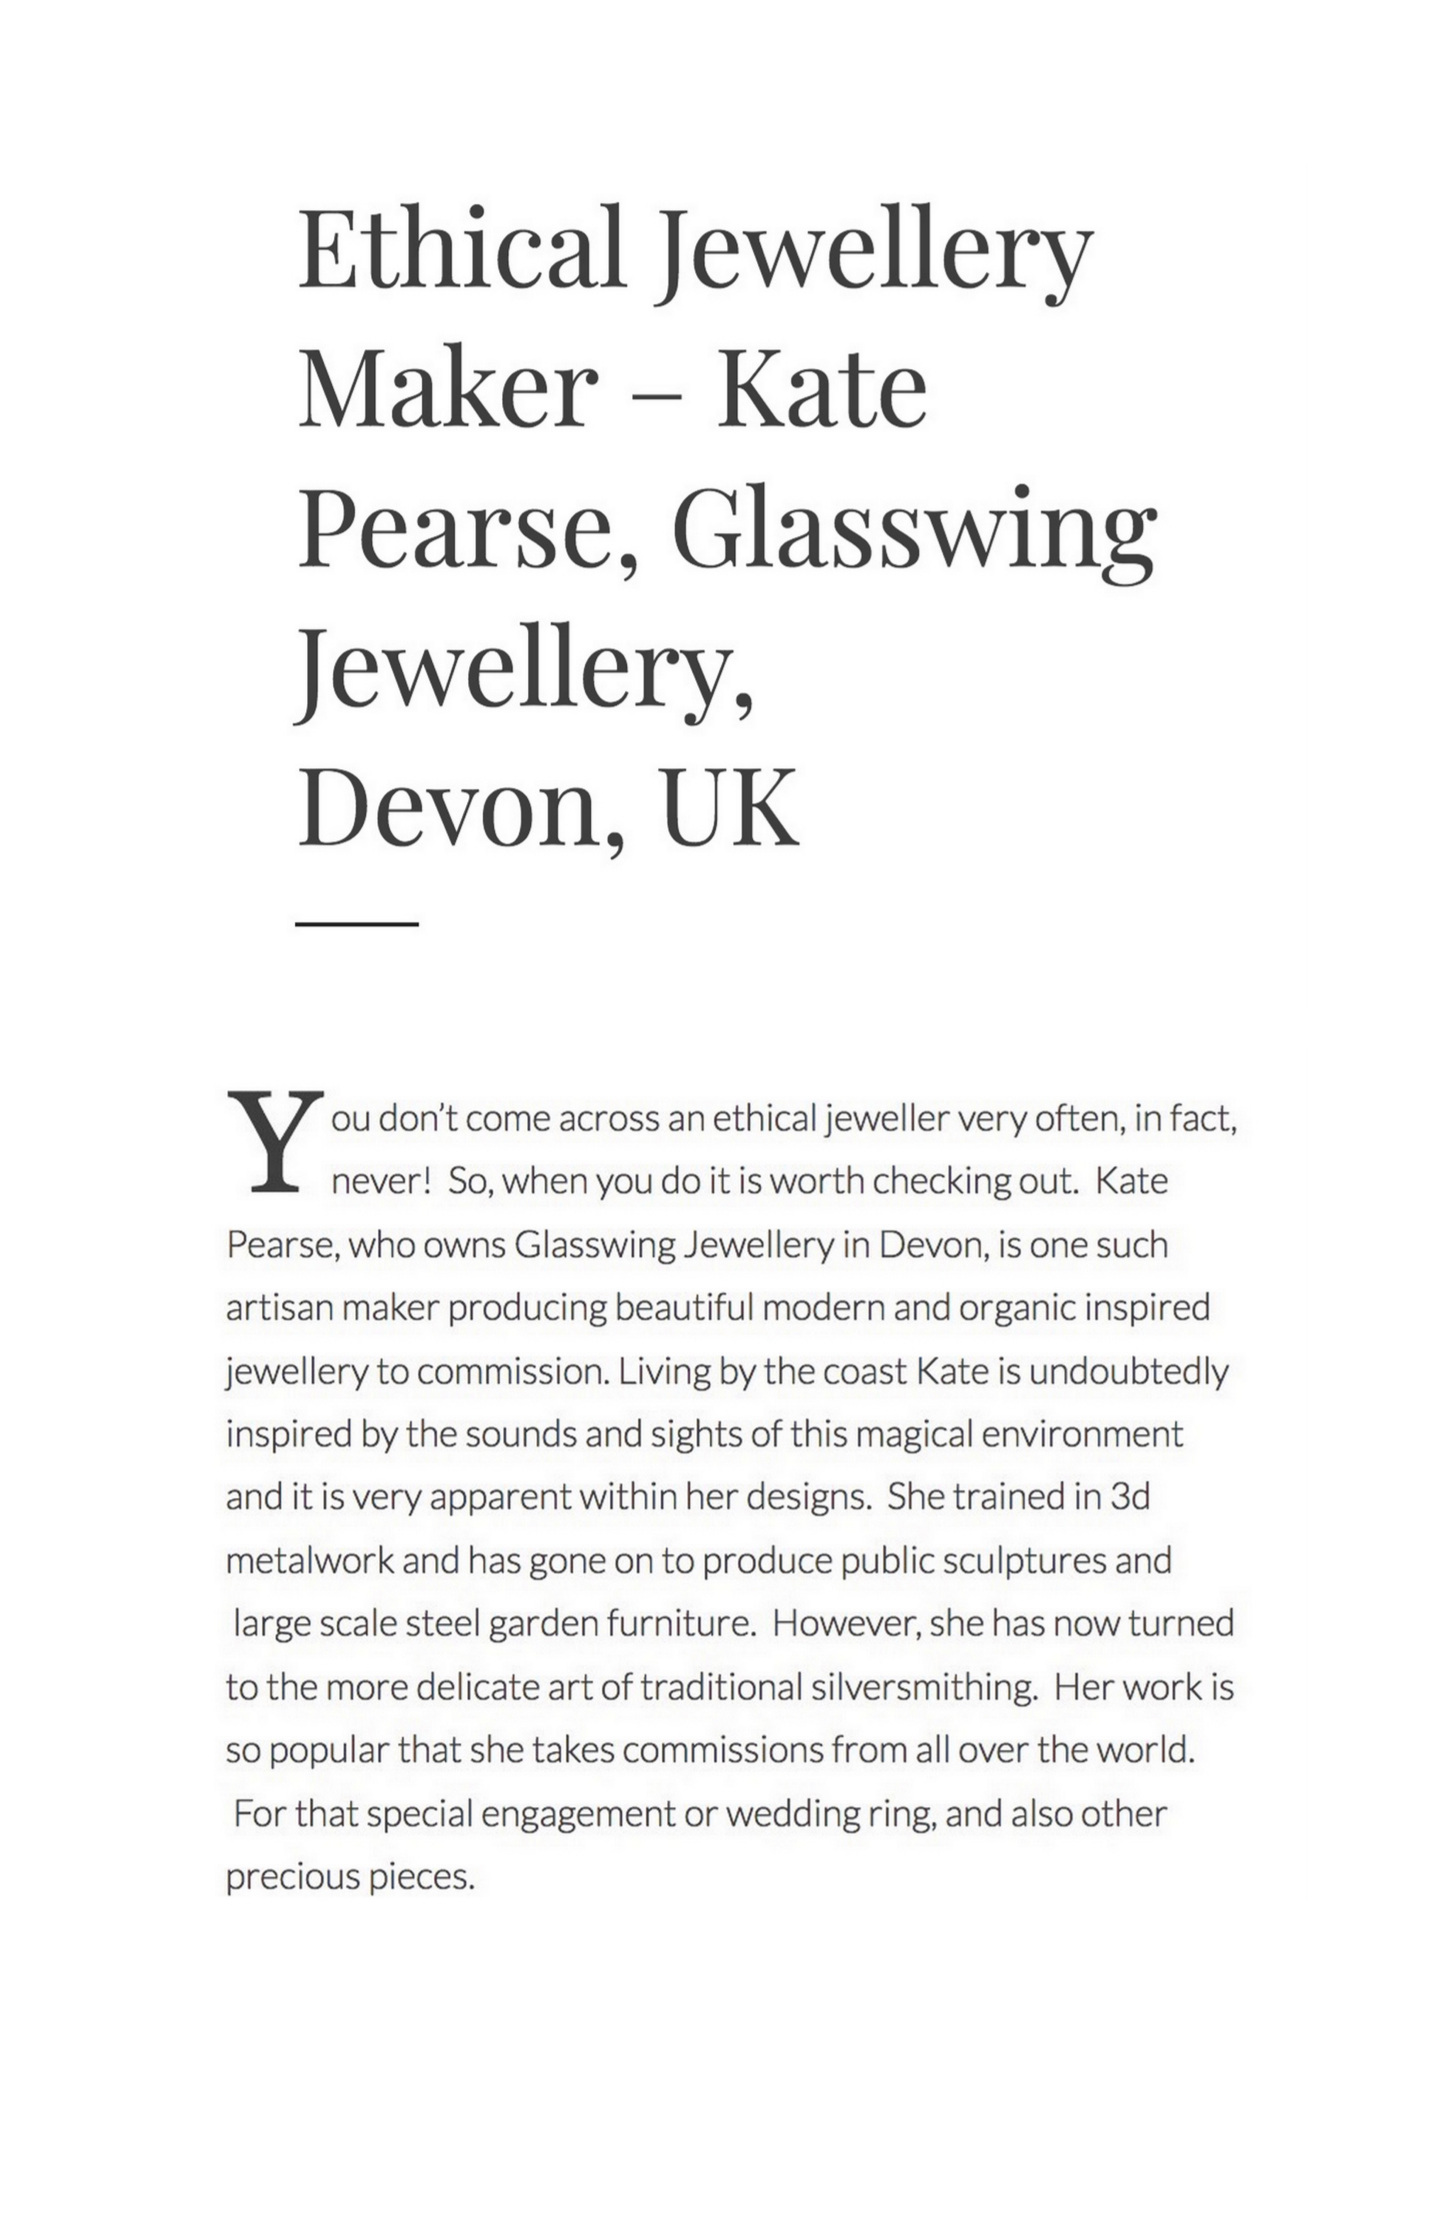 ethical-jewellery-article-the-h-files-glasswing.jpg